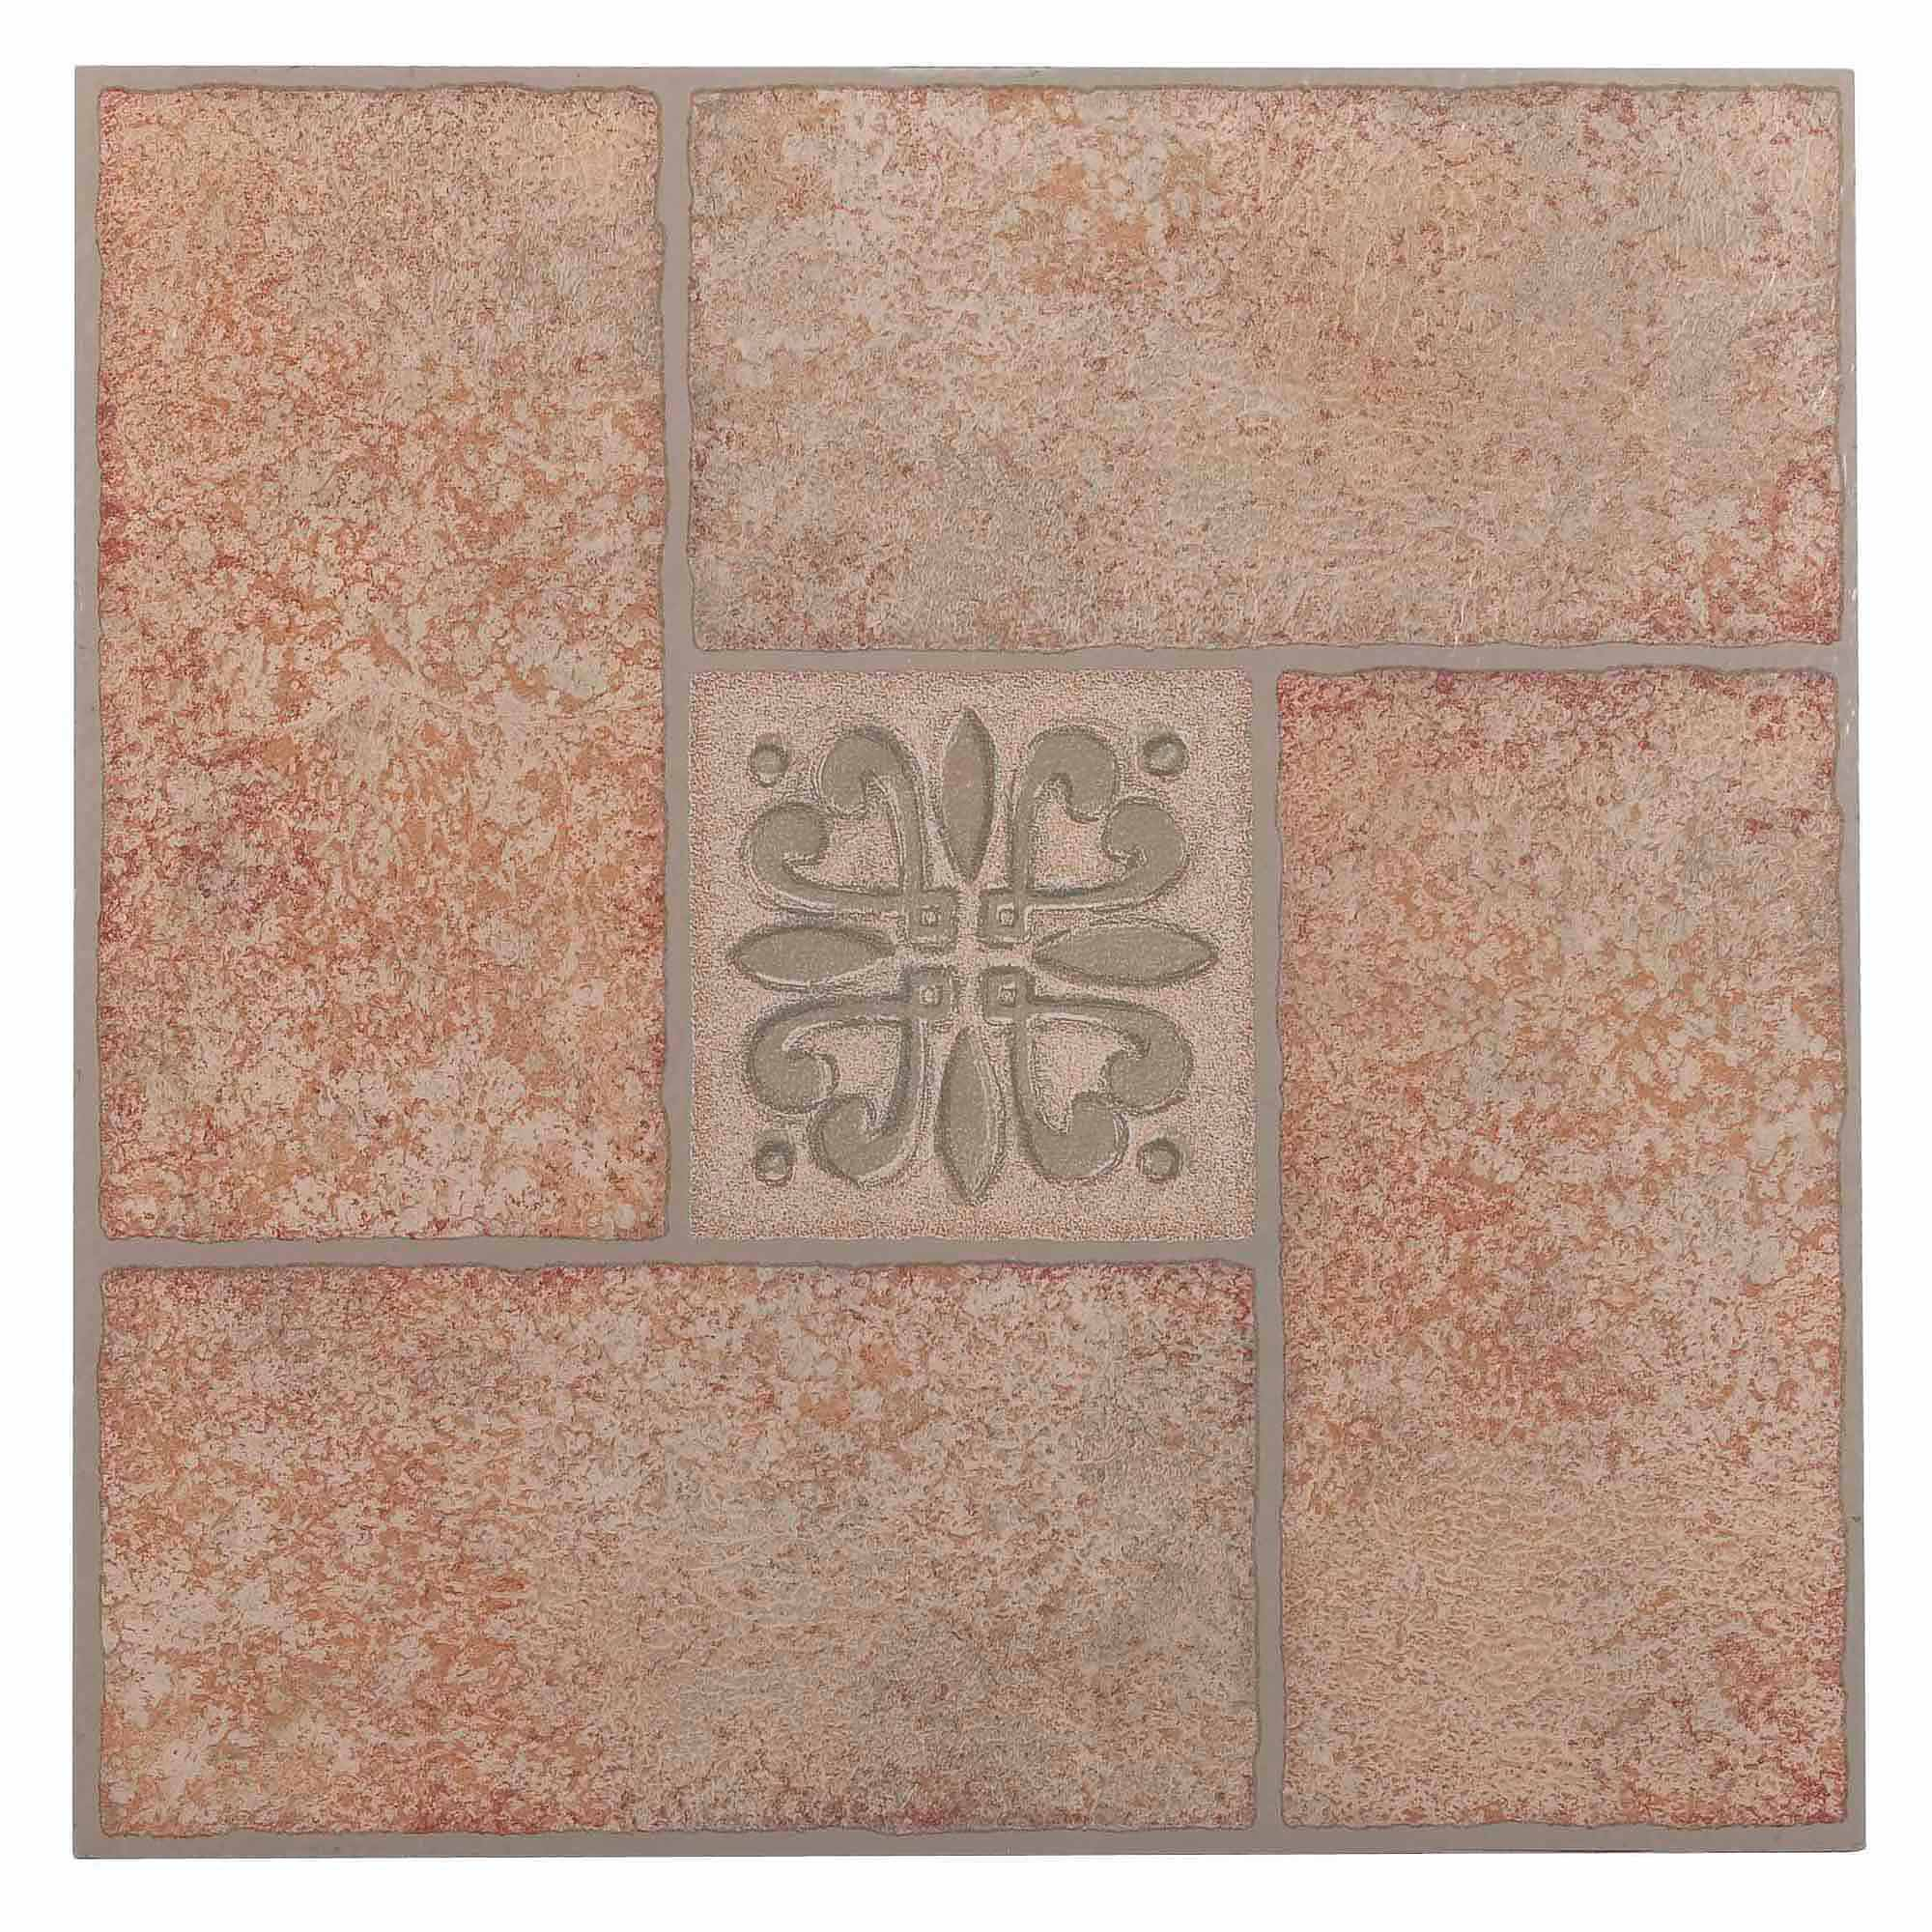 Nexus beige terracotta motif center 12x12 self adhesive vinyl nexus beige terracotta motif center 12x12 self adhesive vinyl floor tile 20 tiles20 sqft walmart dailygadgetfo Image collections